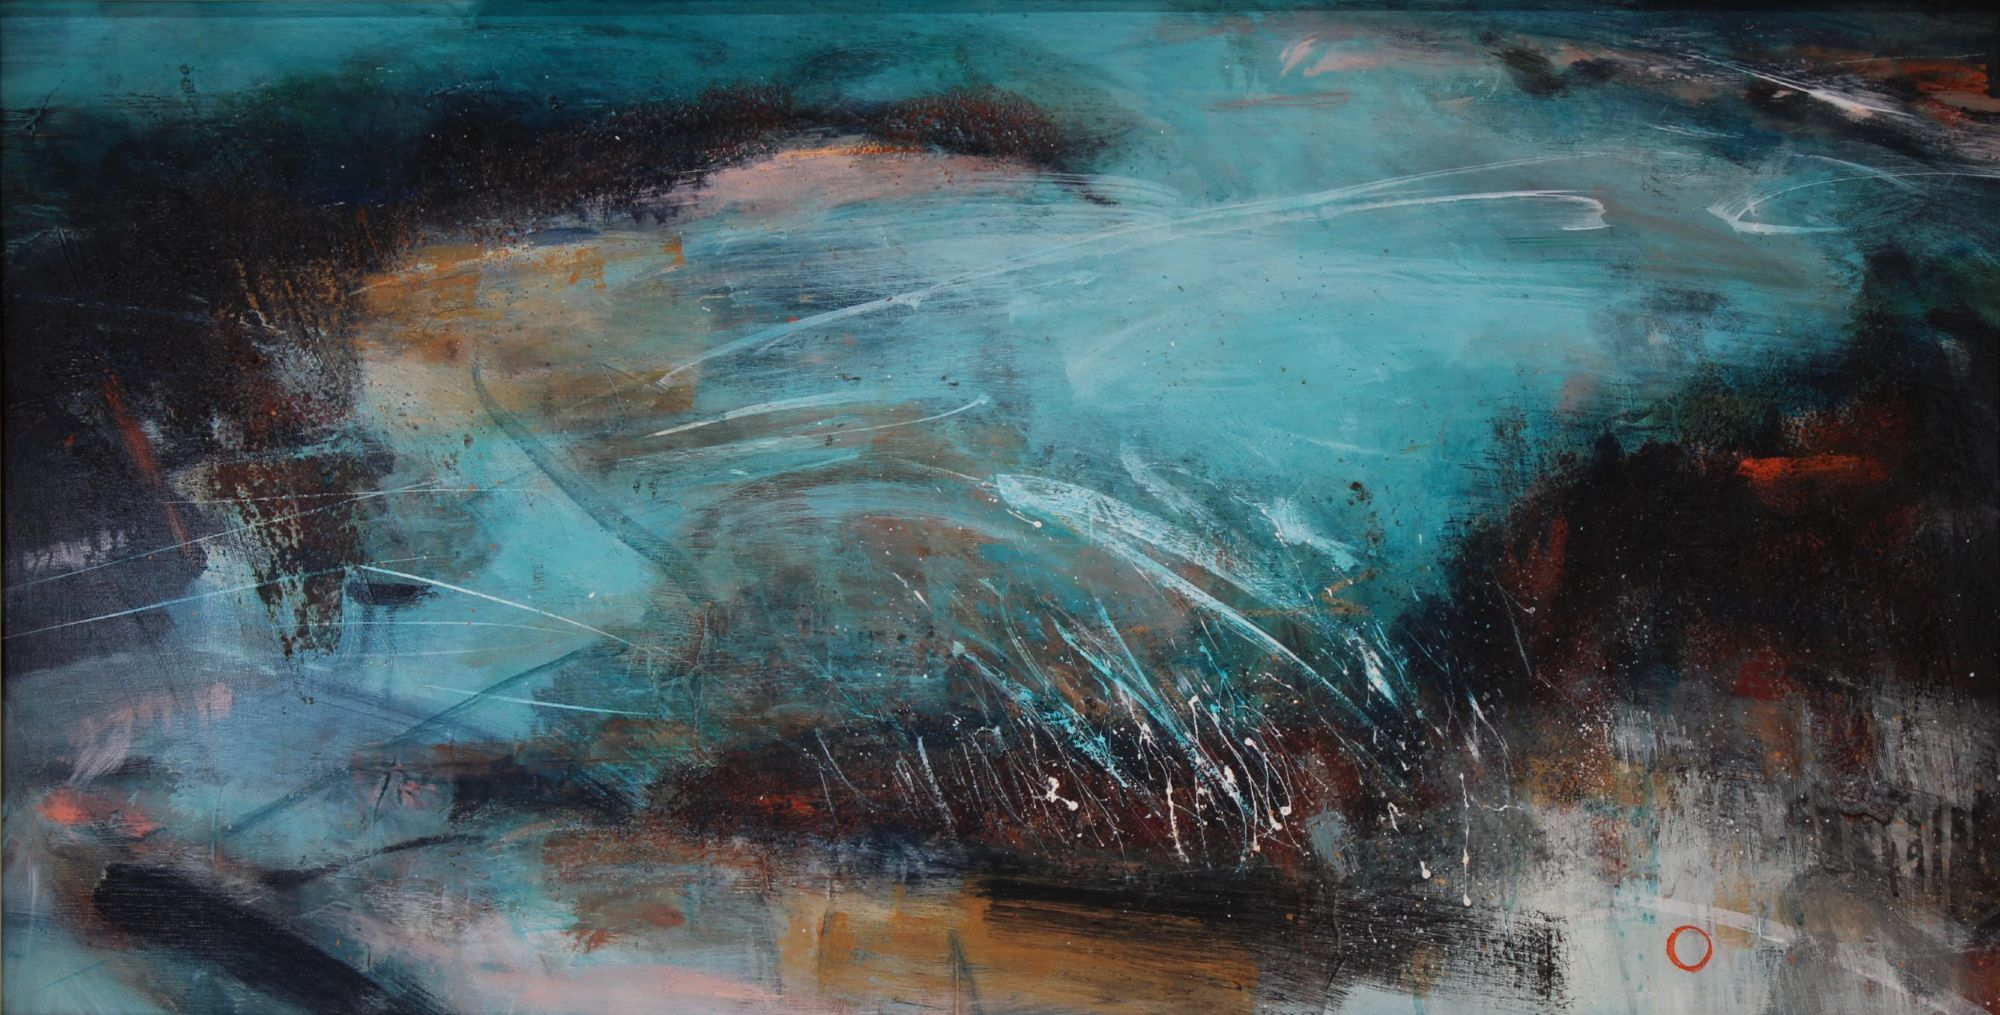 Abstract turquoise blue and rust sea and rocks